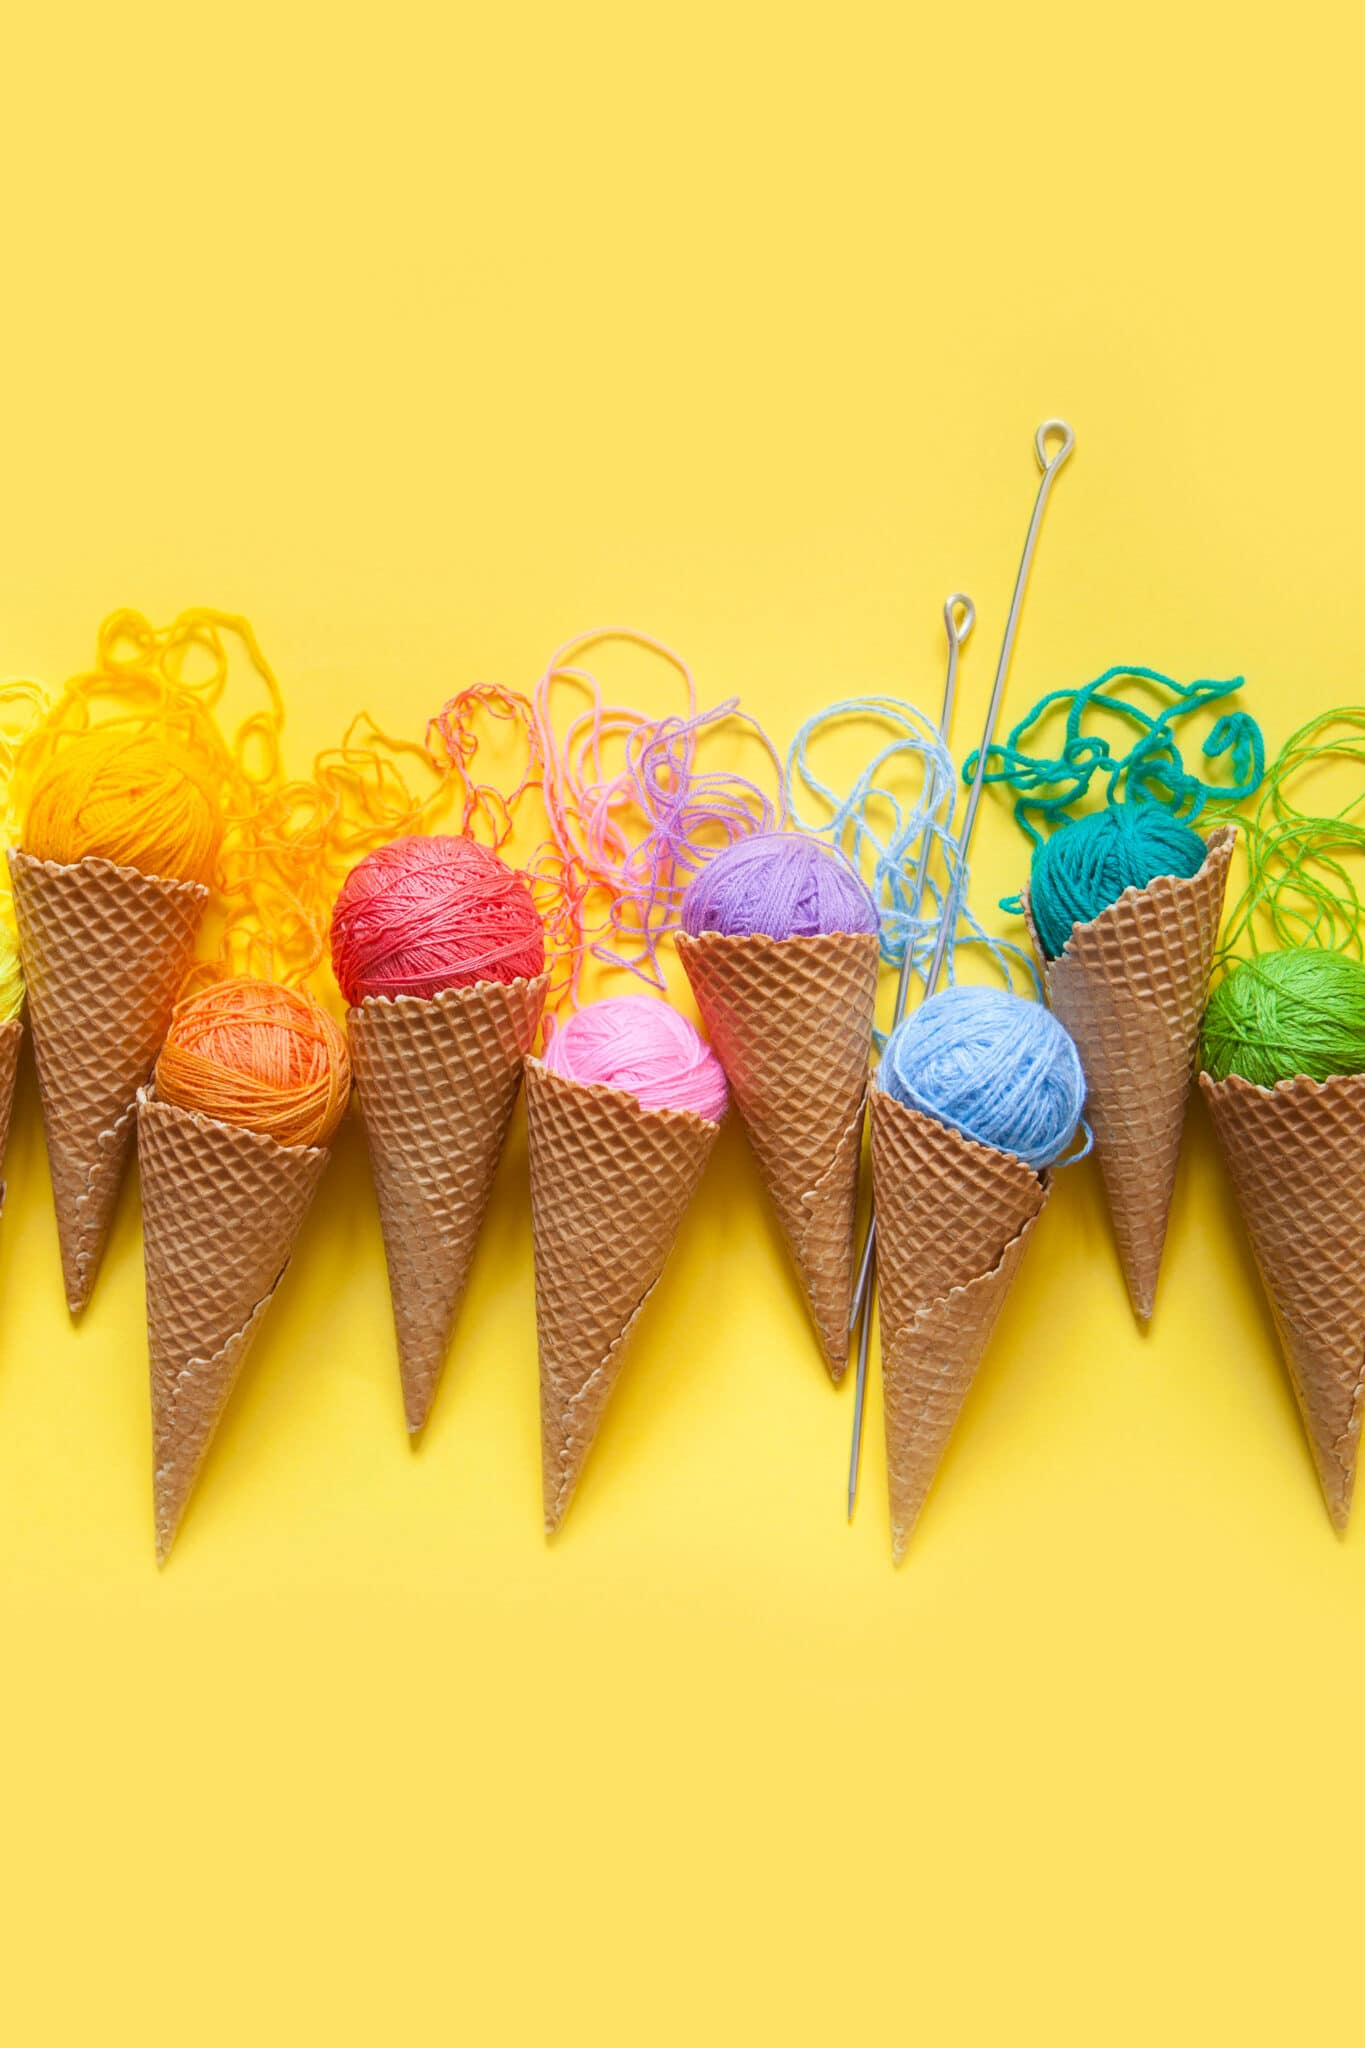 Balls of yarn lie in a waffle cone for ice cream. Coloured wool against a bright yellow background.